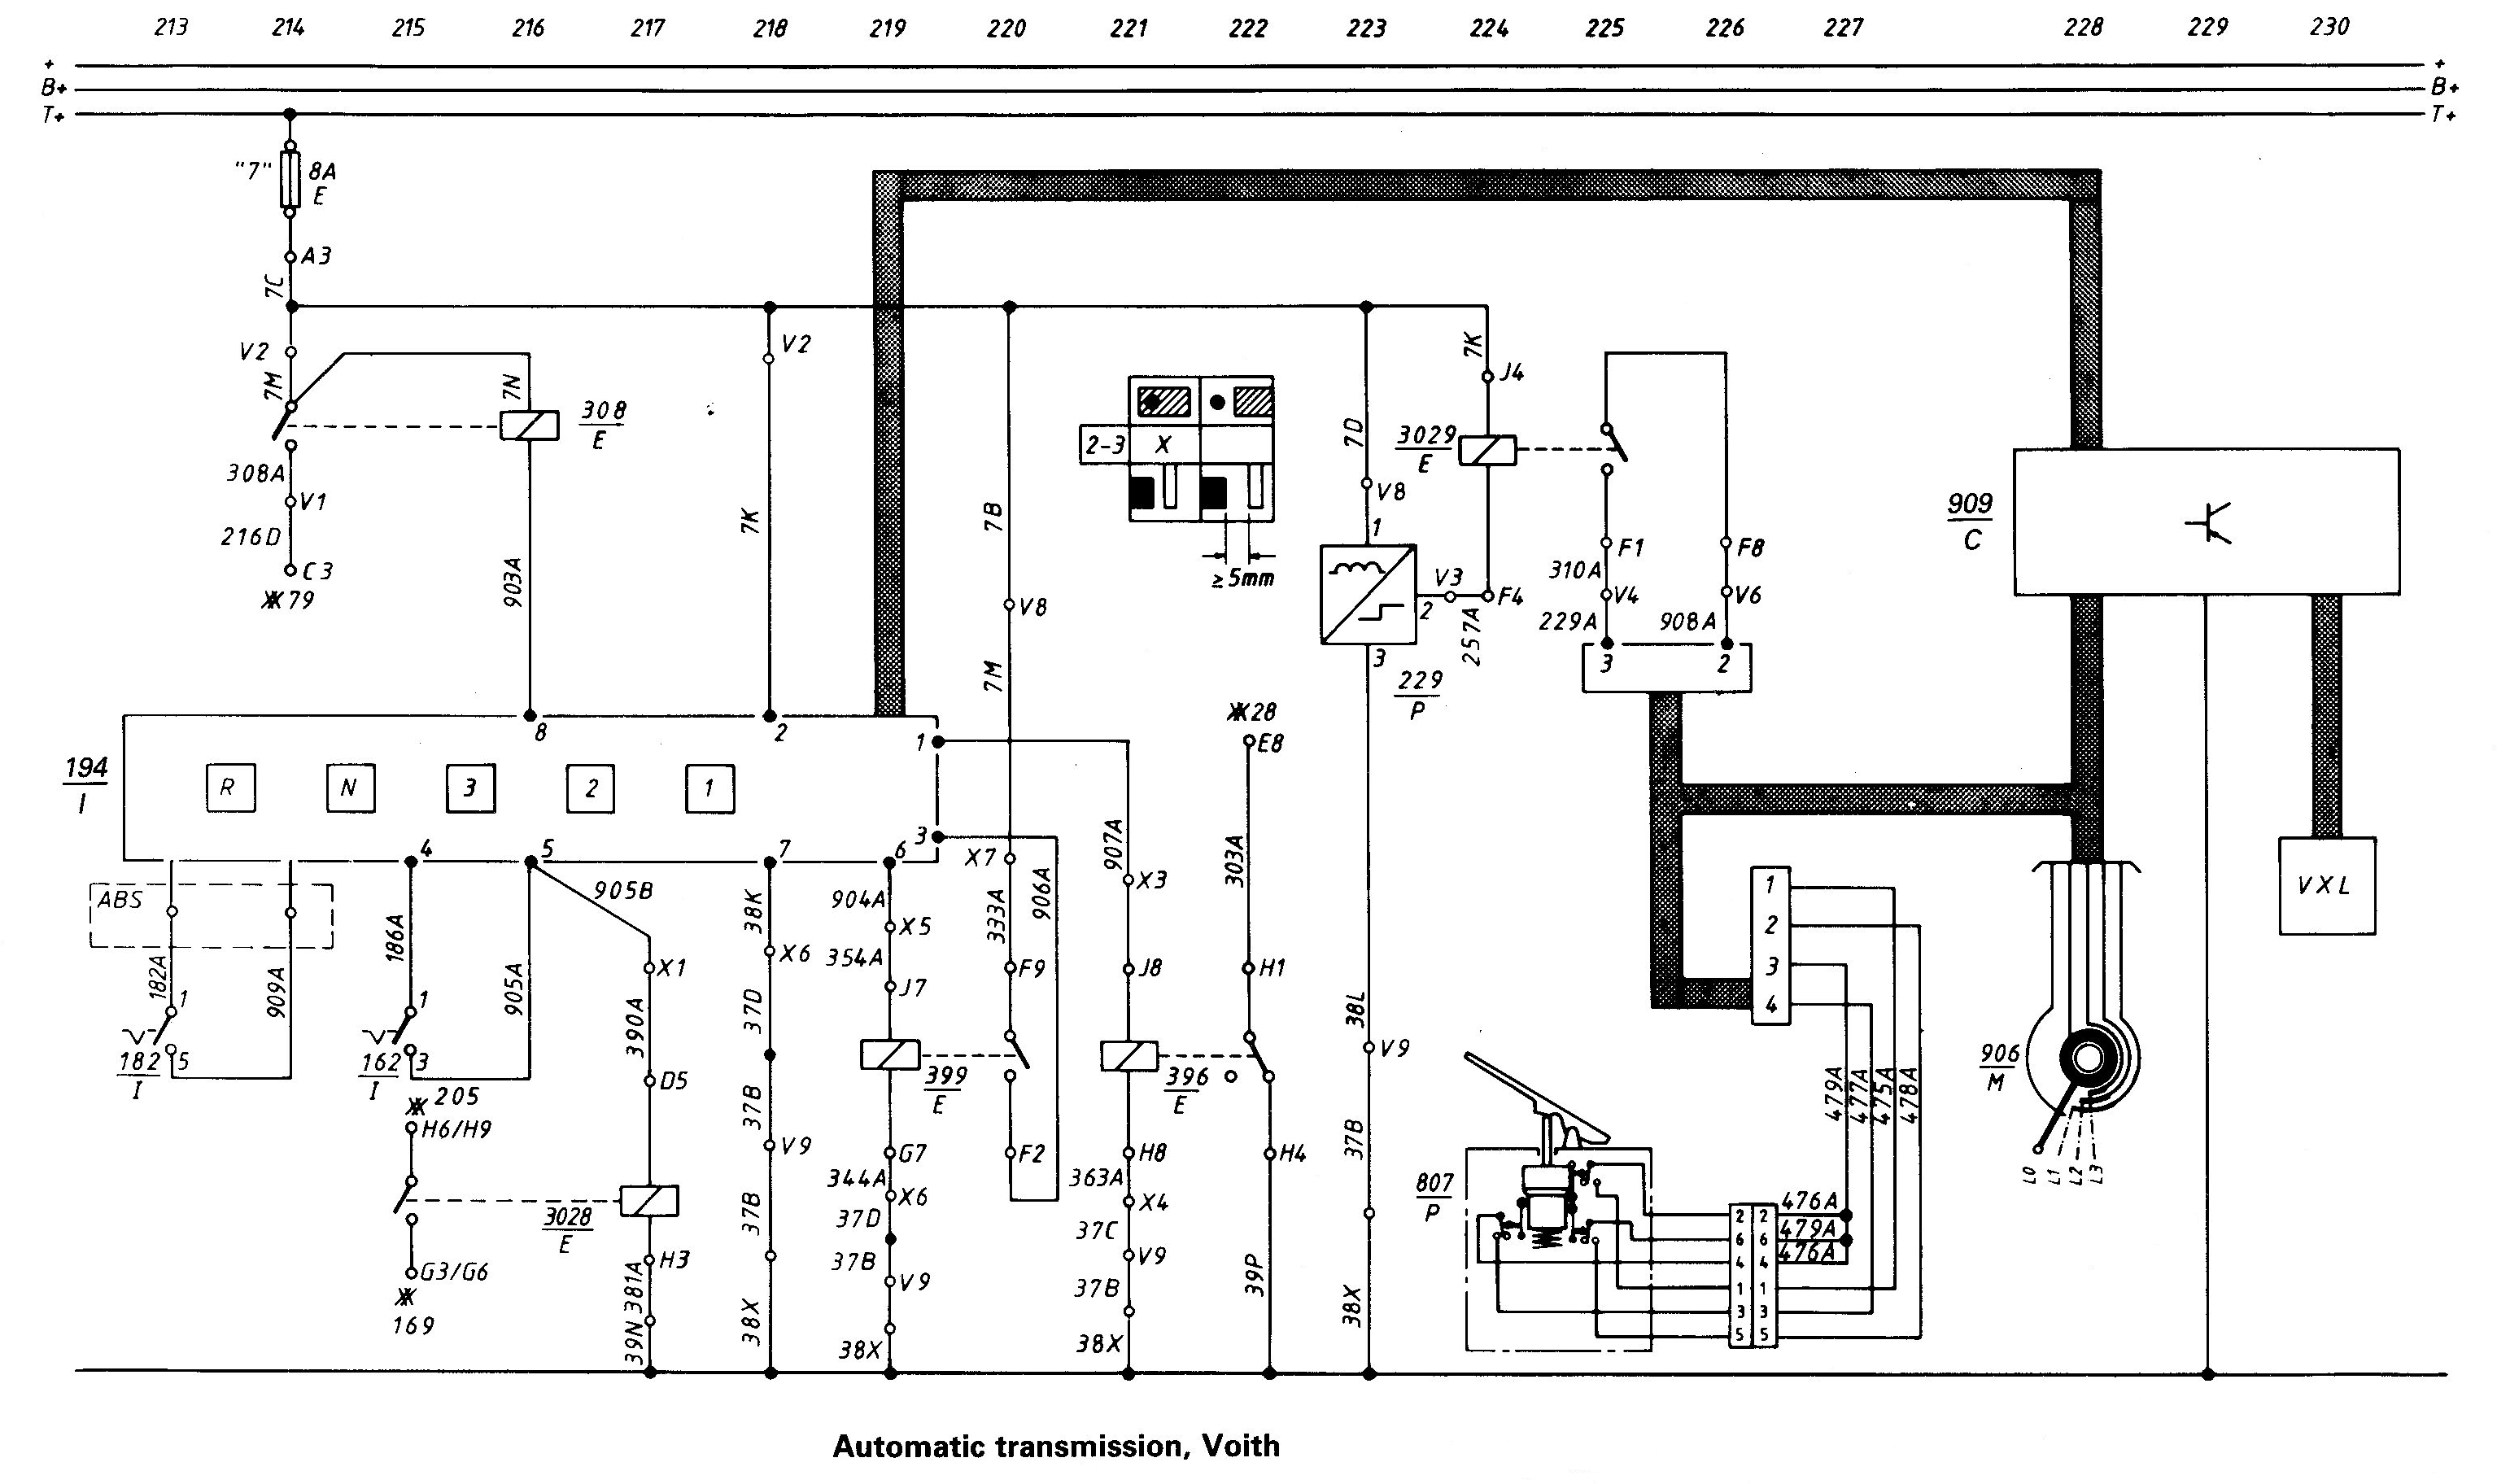 Voith Wiring Diagram